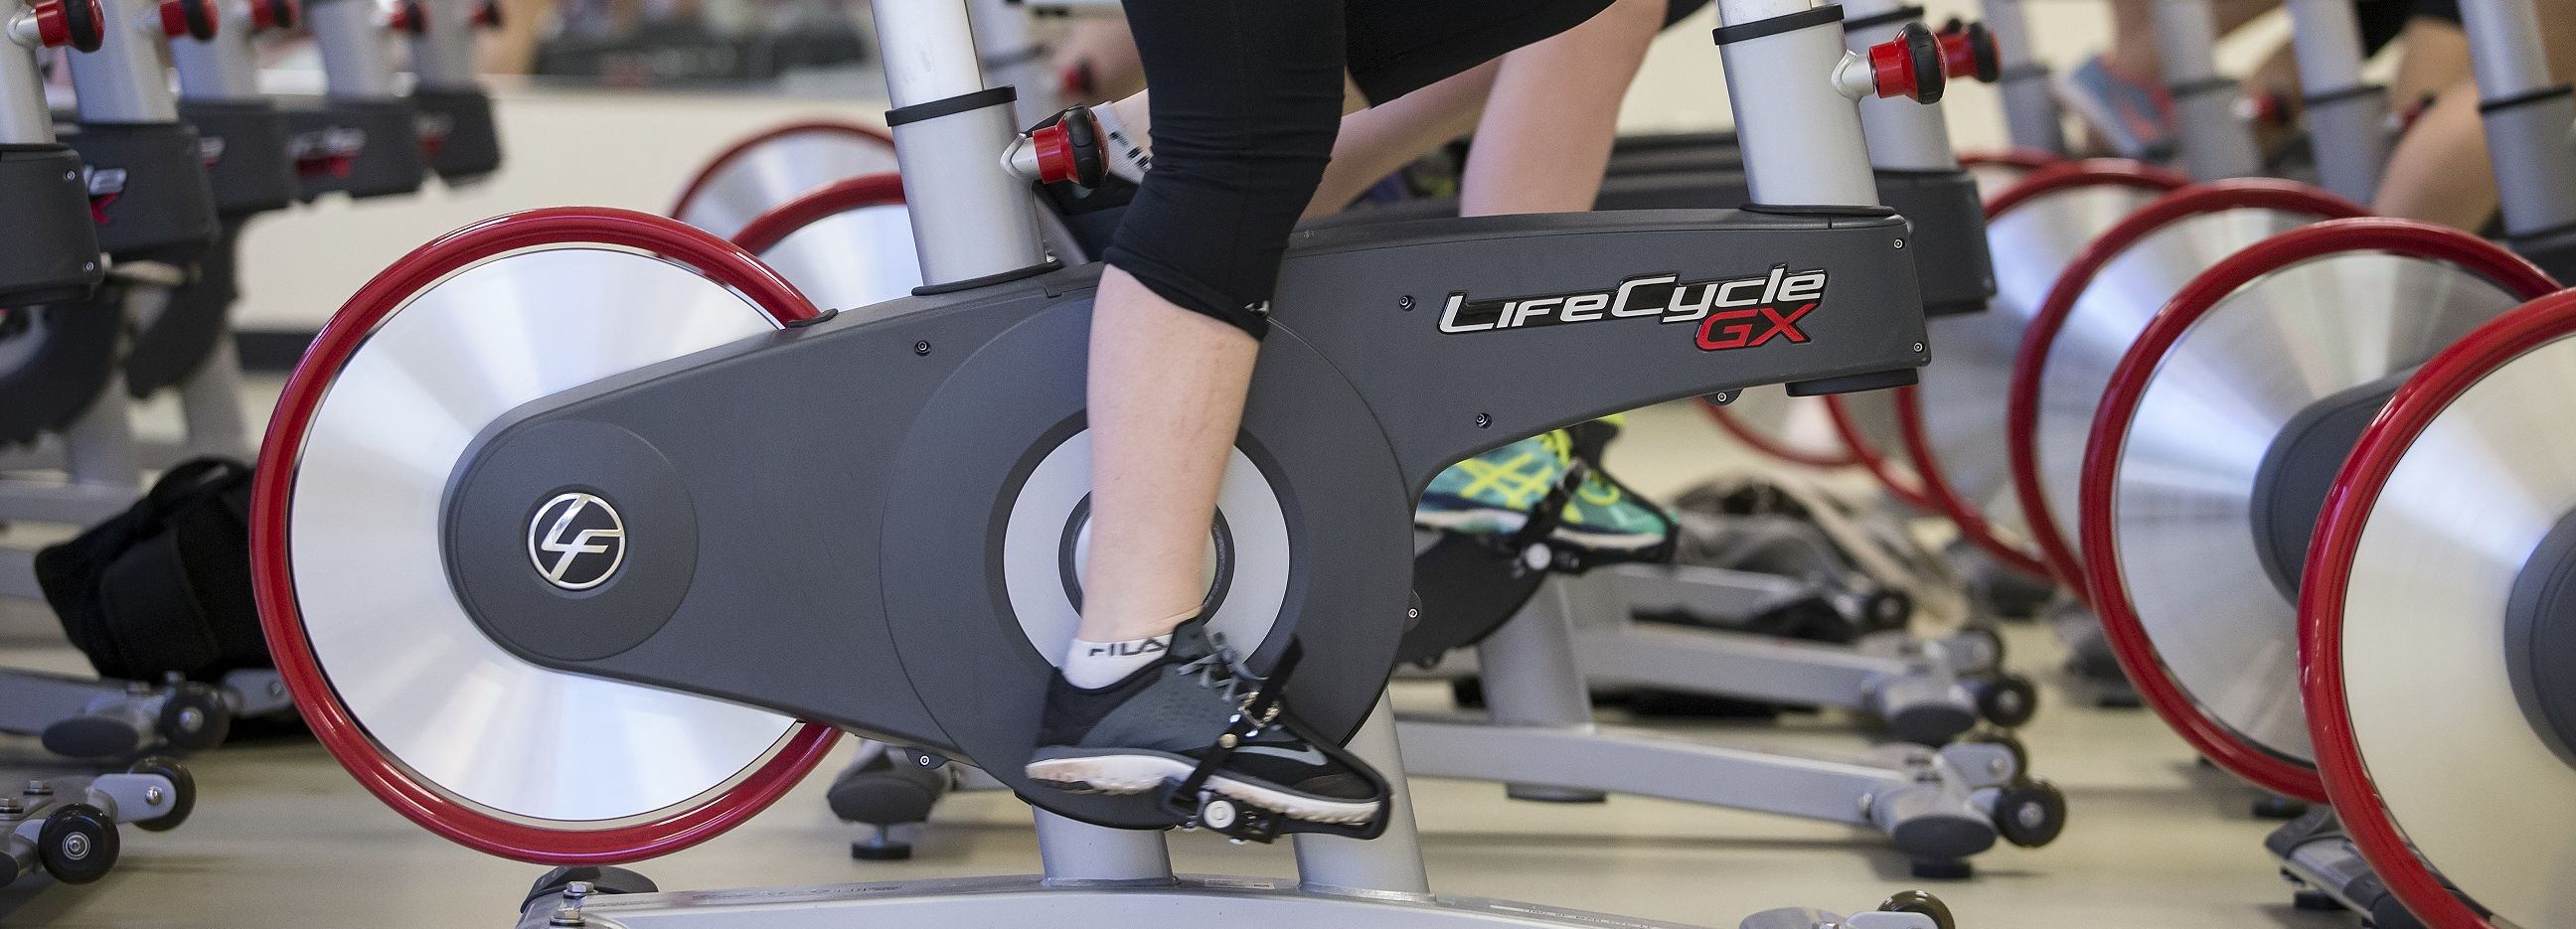 Legs pedaling during an indoor cycling session.